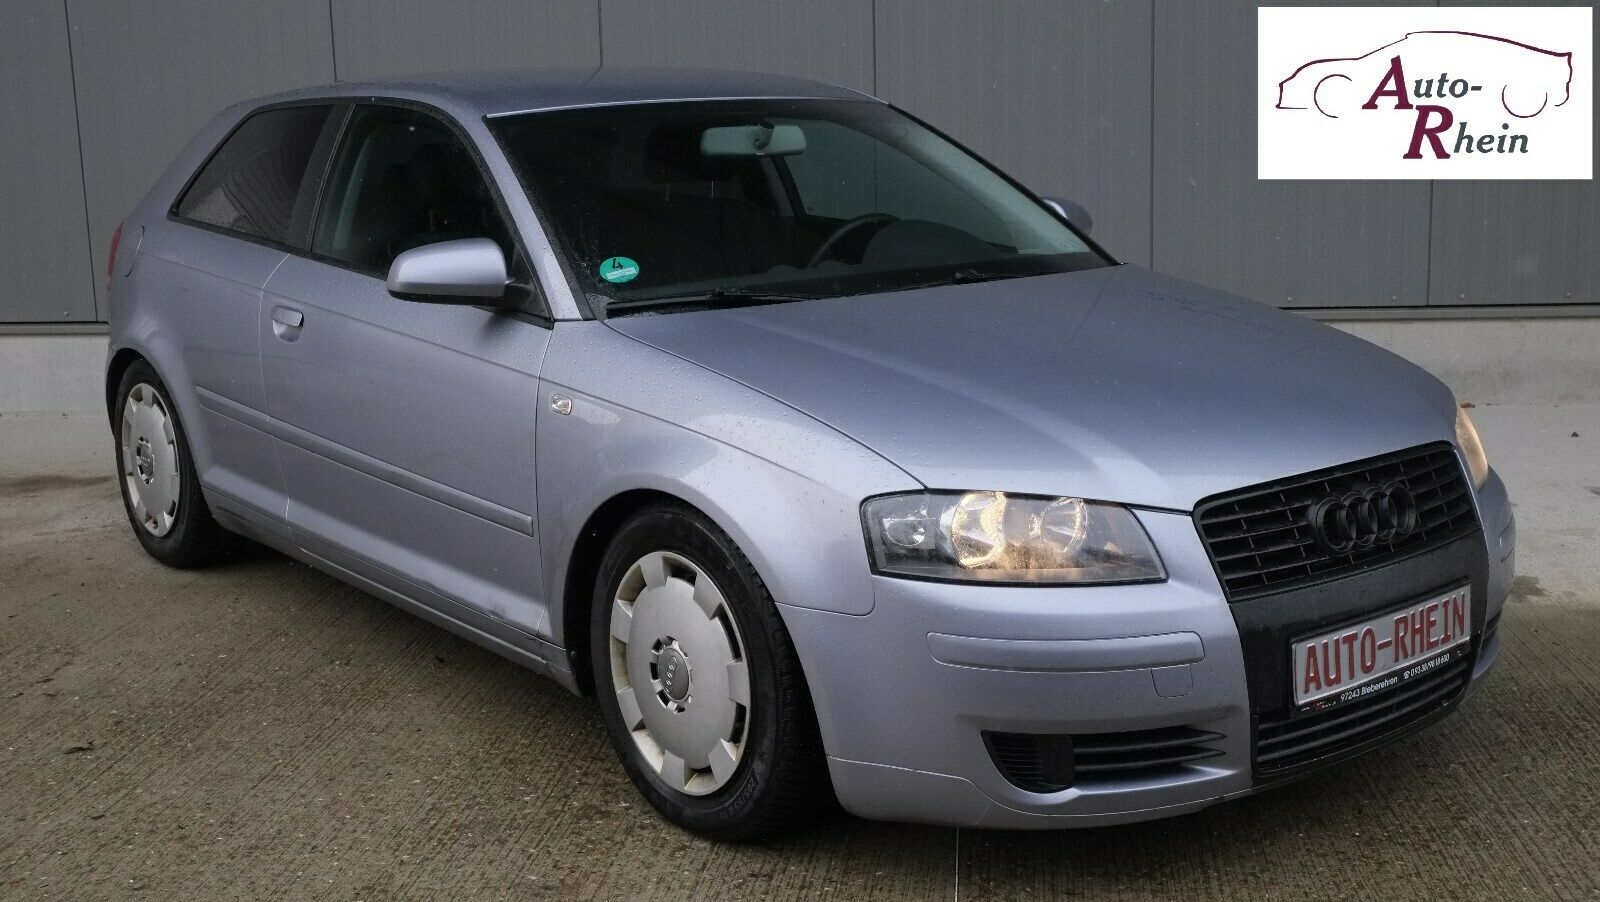 AUDI A3 1.6 Attraction,Regensensor, TÜV 10/19, Klima